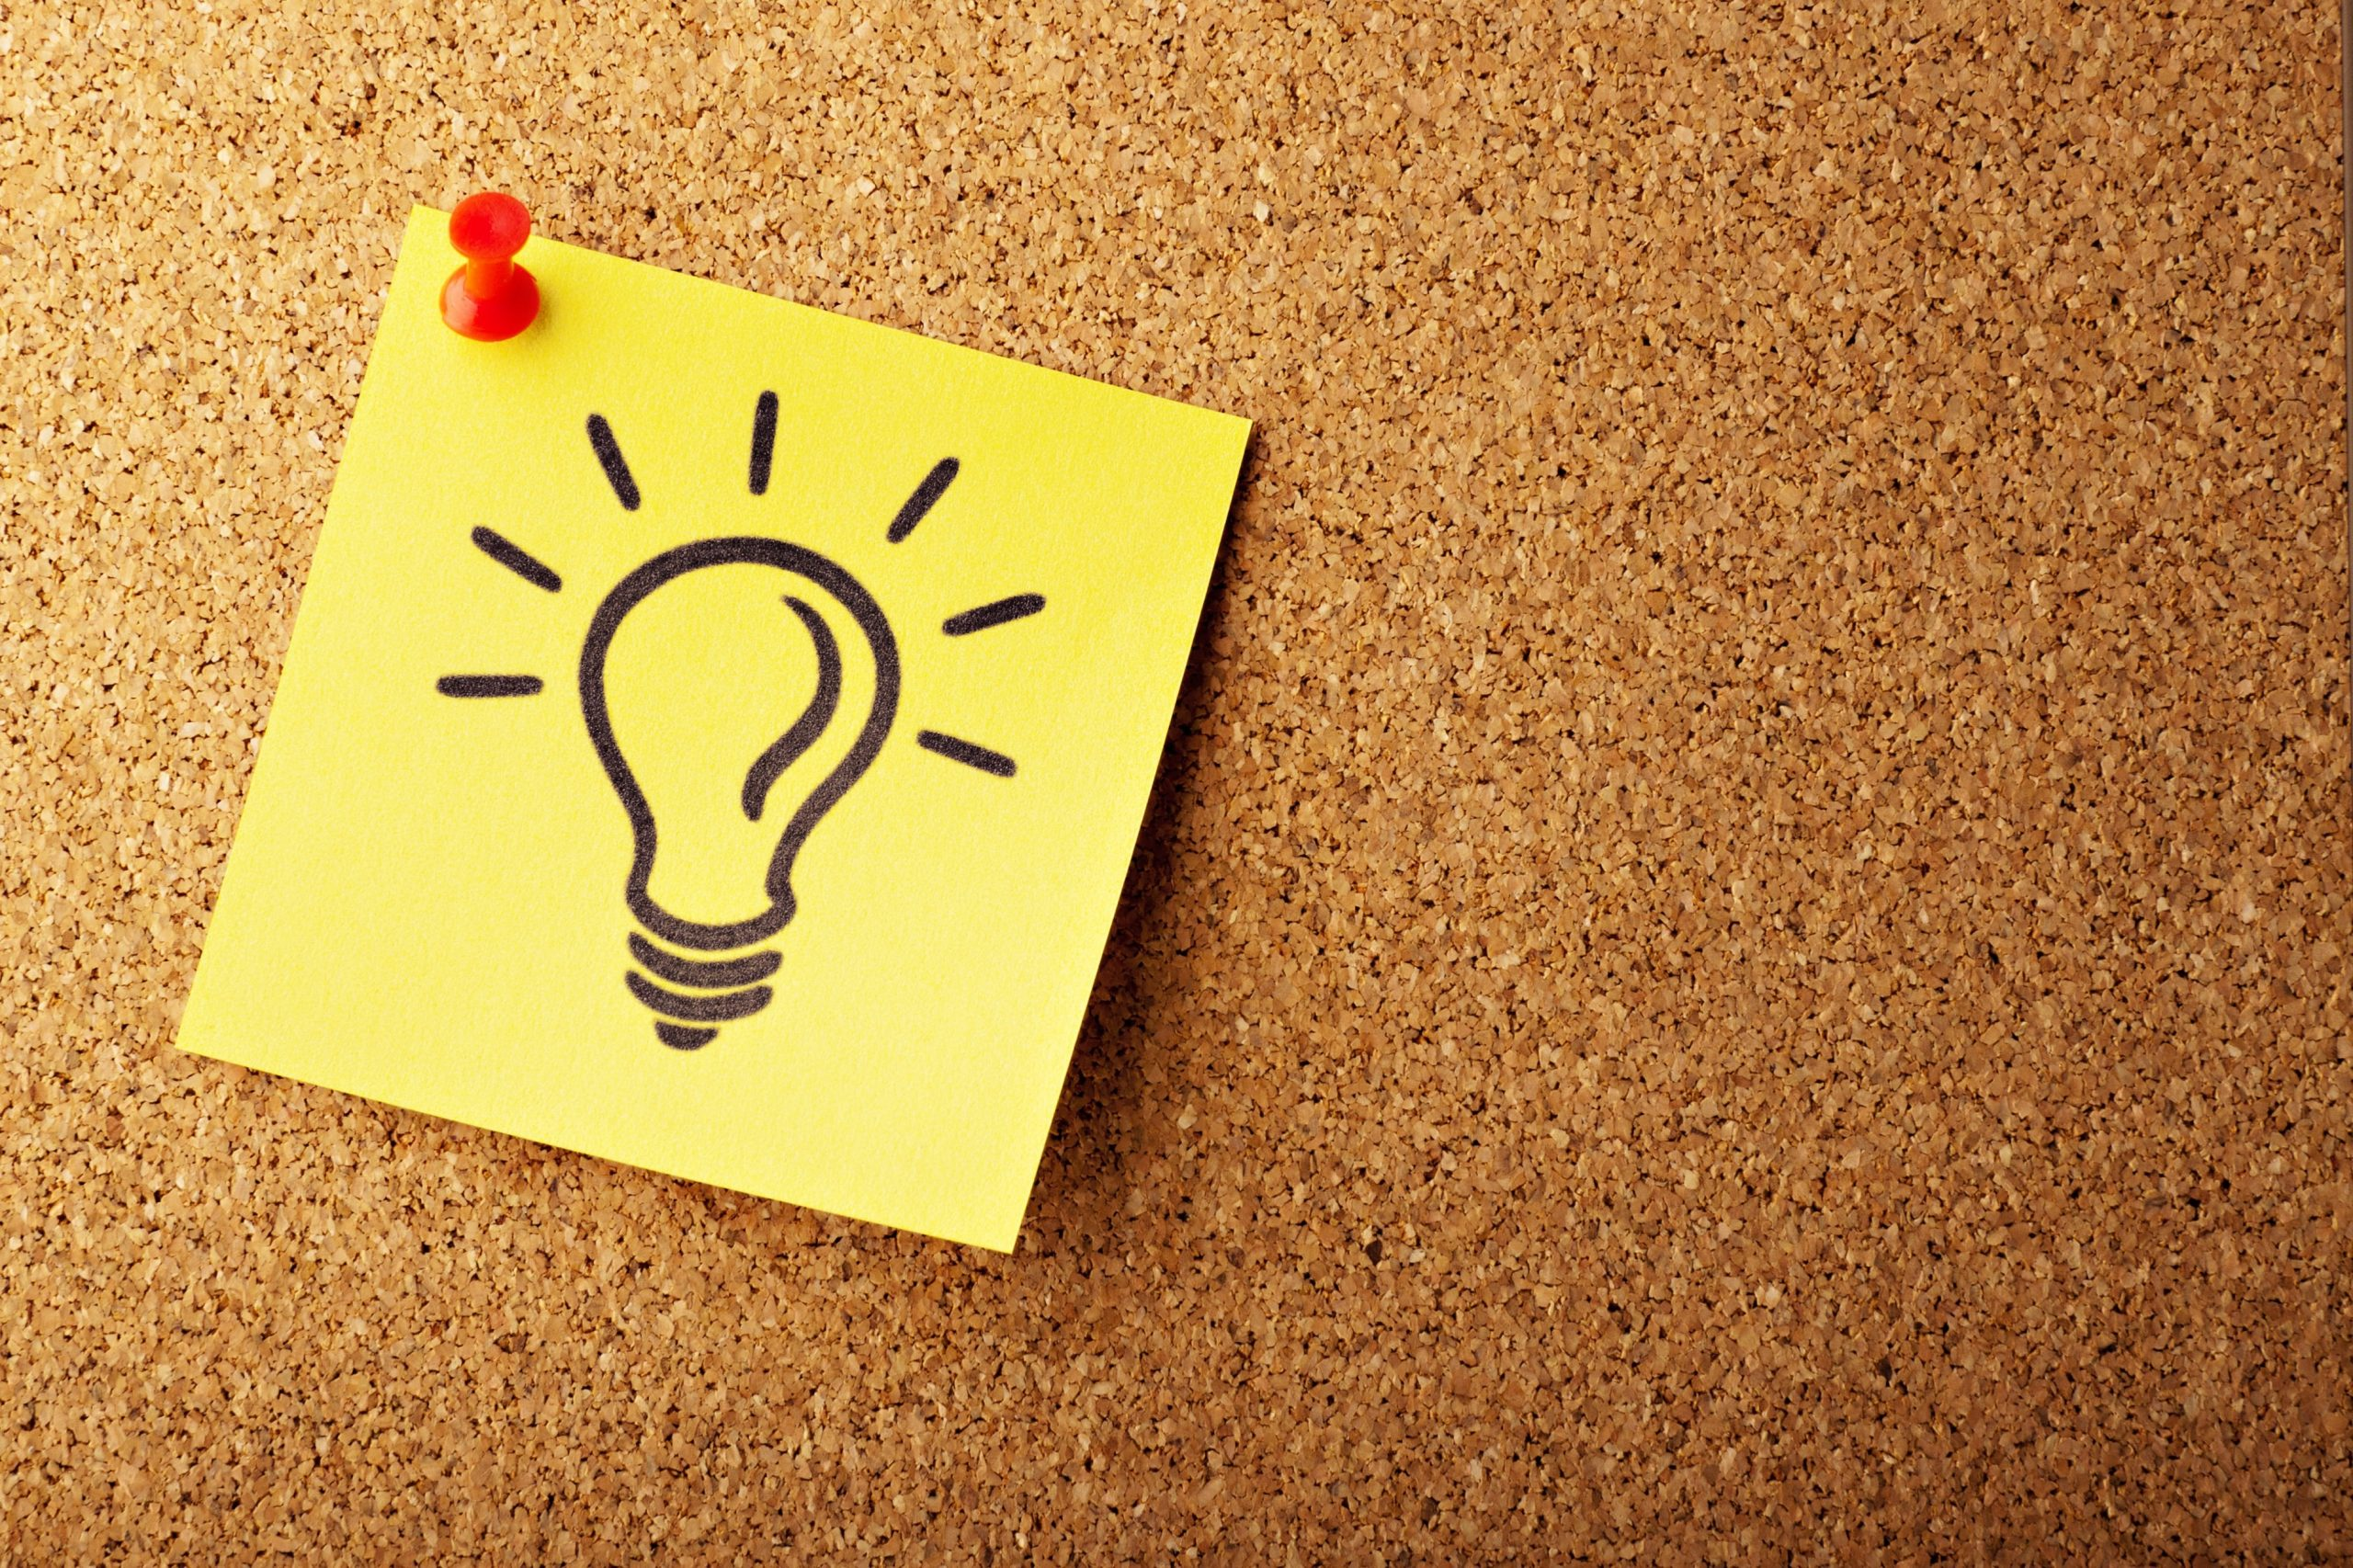 Yellow post-it note with a light bulb drawn on it, and pinned to a cork board